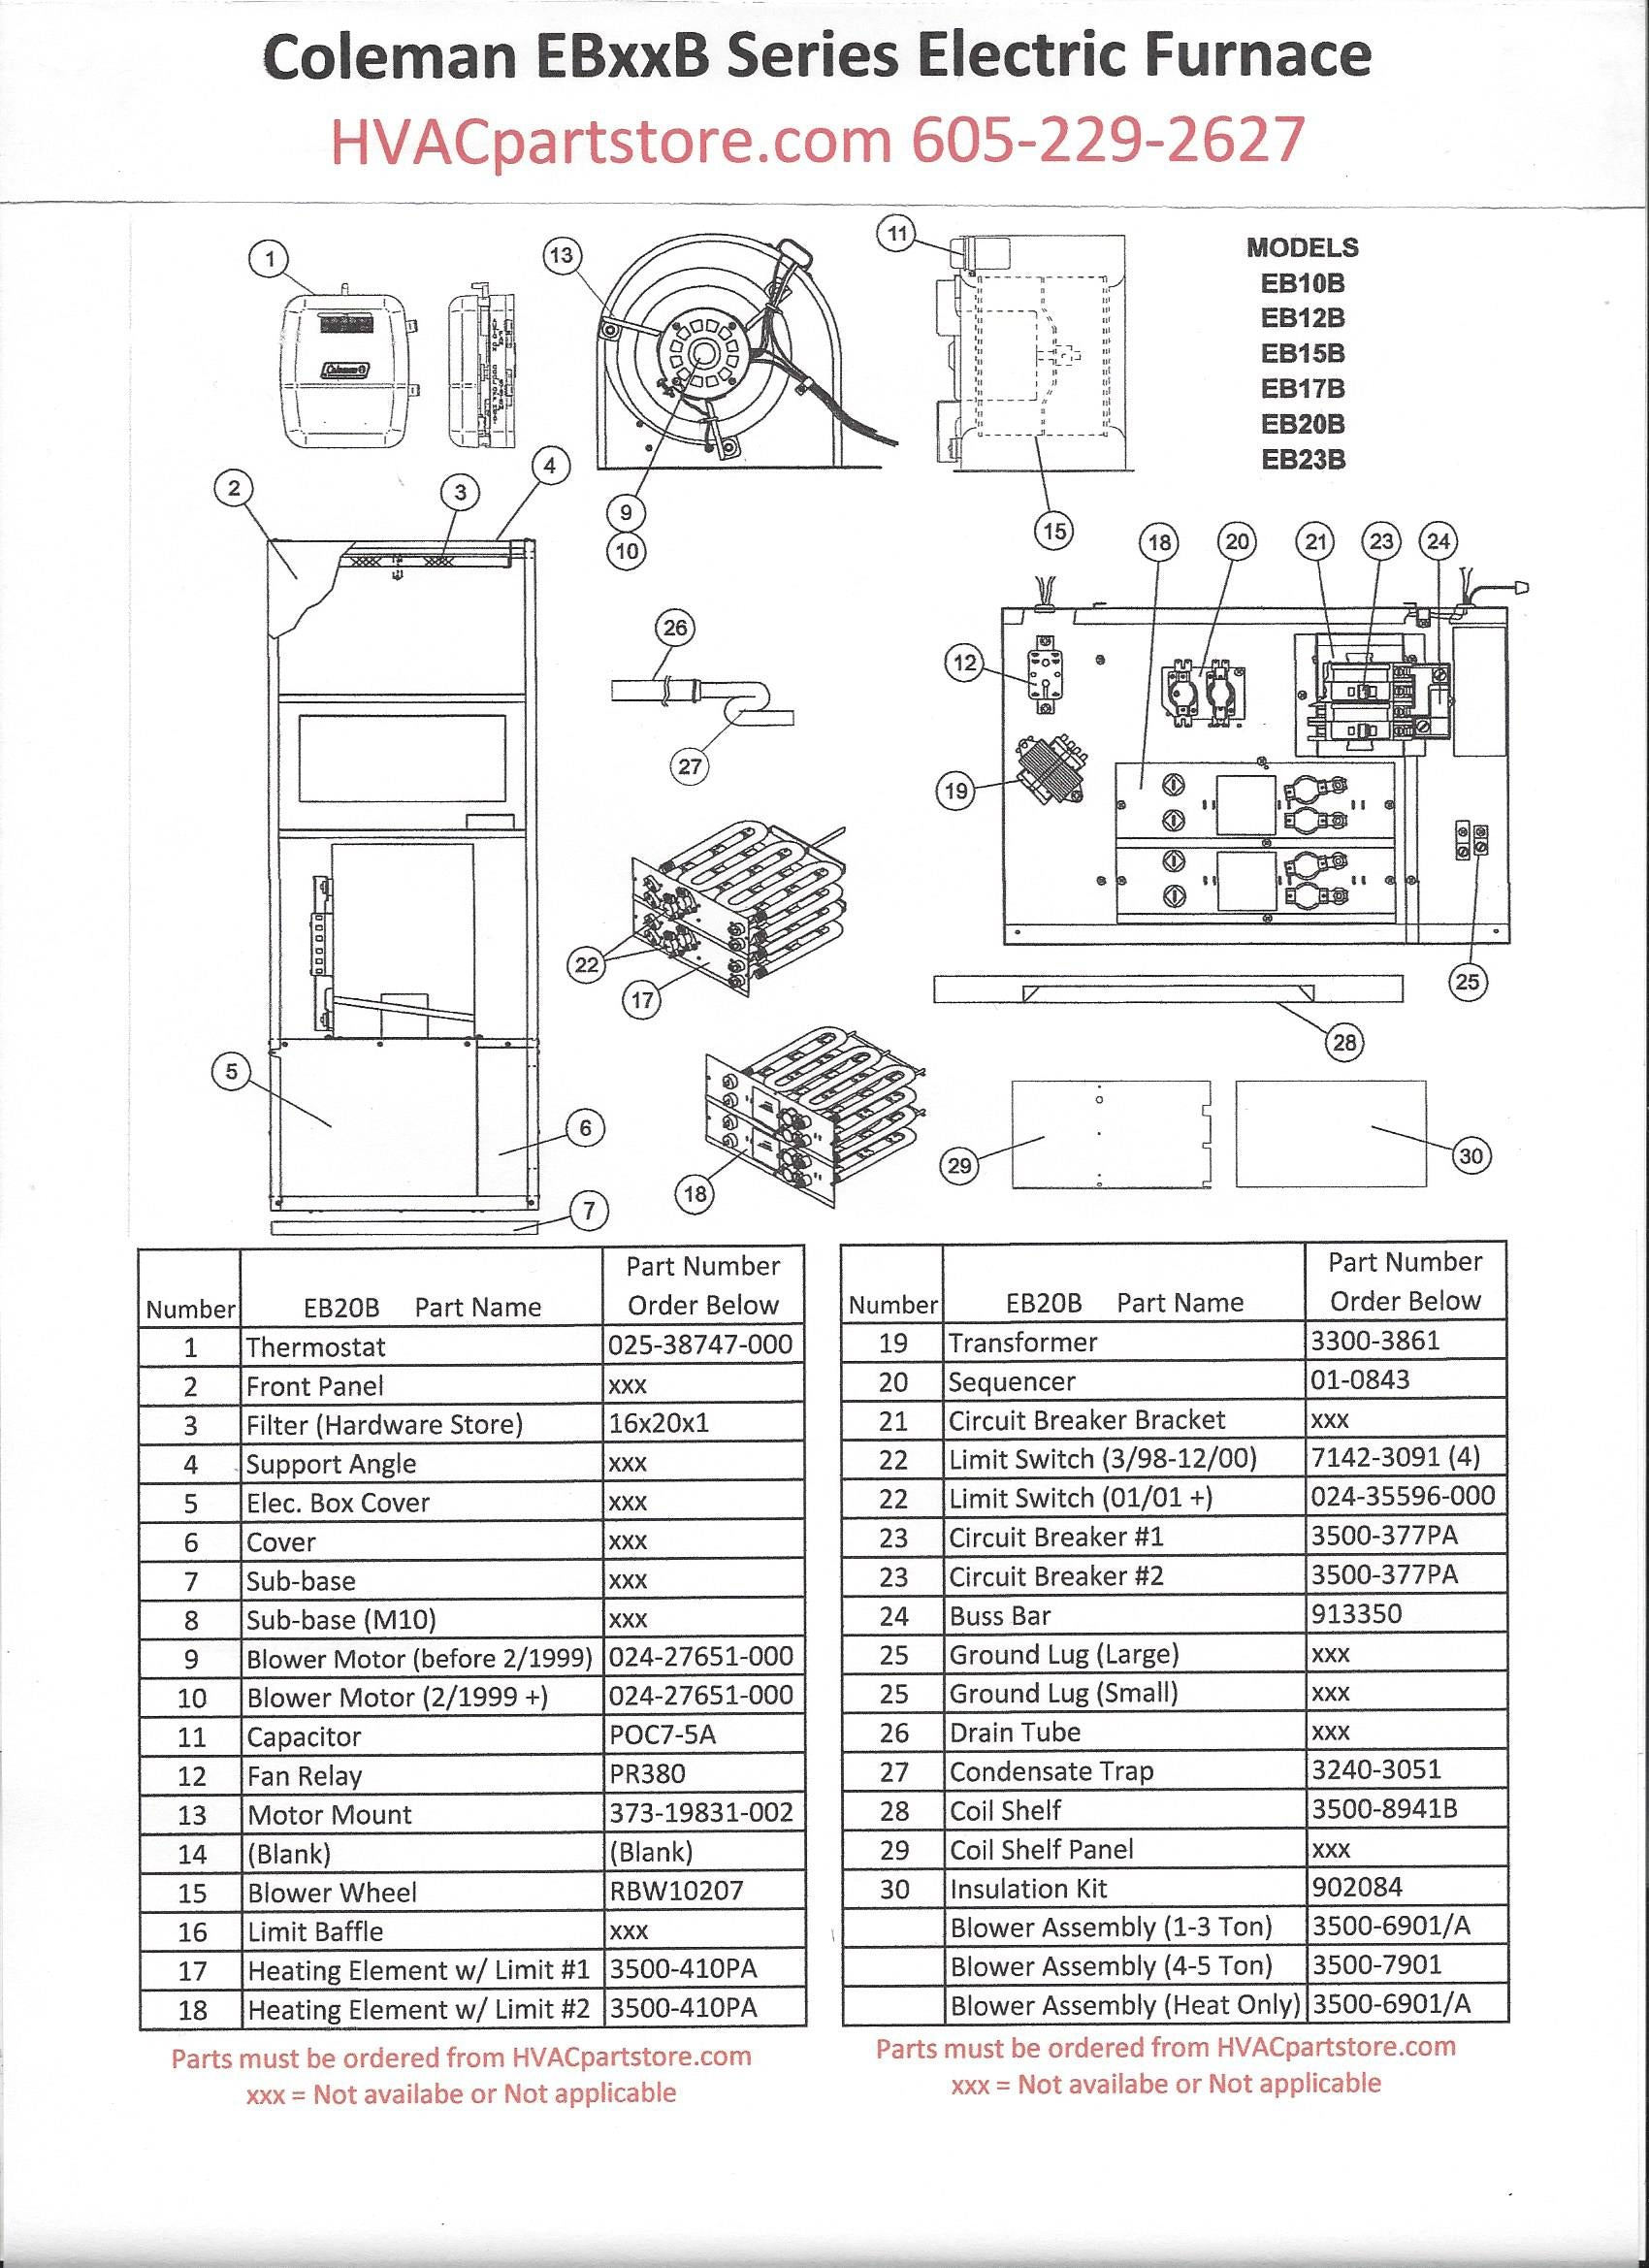 Basic Ladder Diagram n2DIcvX2hEcSSGGZCtqH85xfXUp2RYOKltDqBtvDdKs further Suzuki Gsx R600 Srad Motorcycle 1998 likewise Buck Stove Repairs also HVAC Manuals Air Conditioners Boilers Furnaces likewise How An Electric Shower Works  mon Electric Shower Faults. on home water heater electrical wiring diagrams